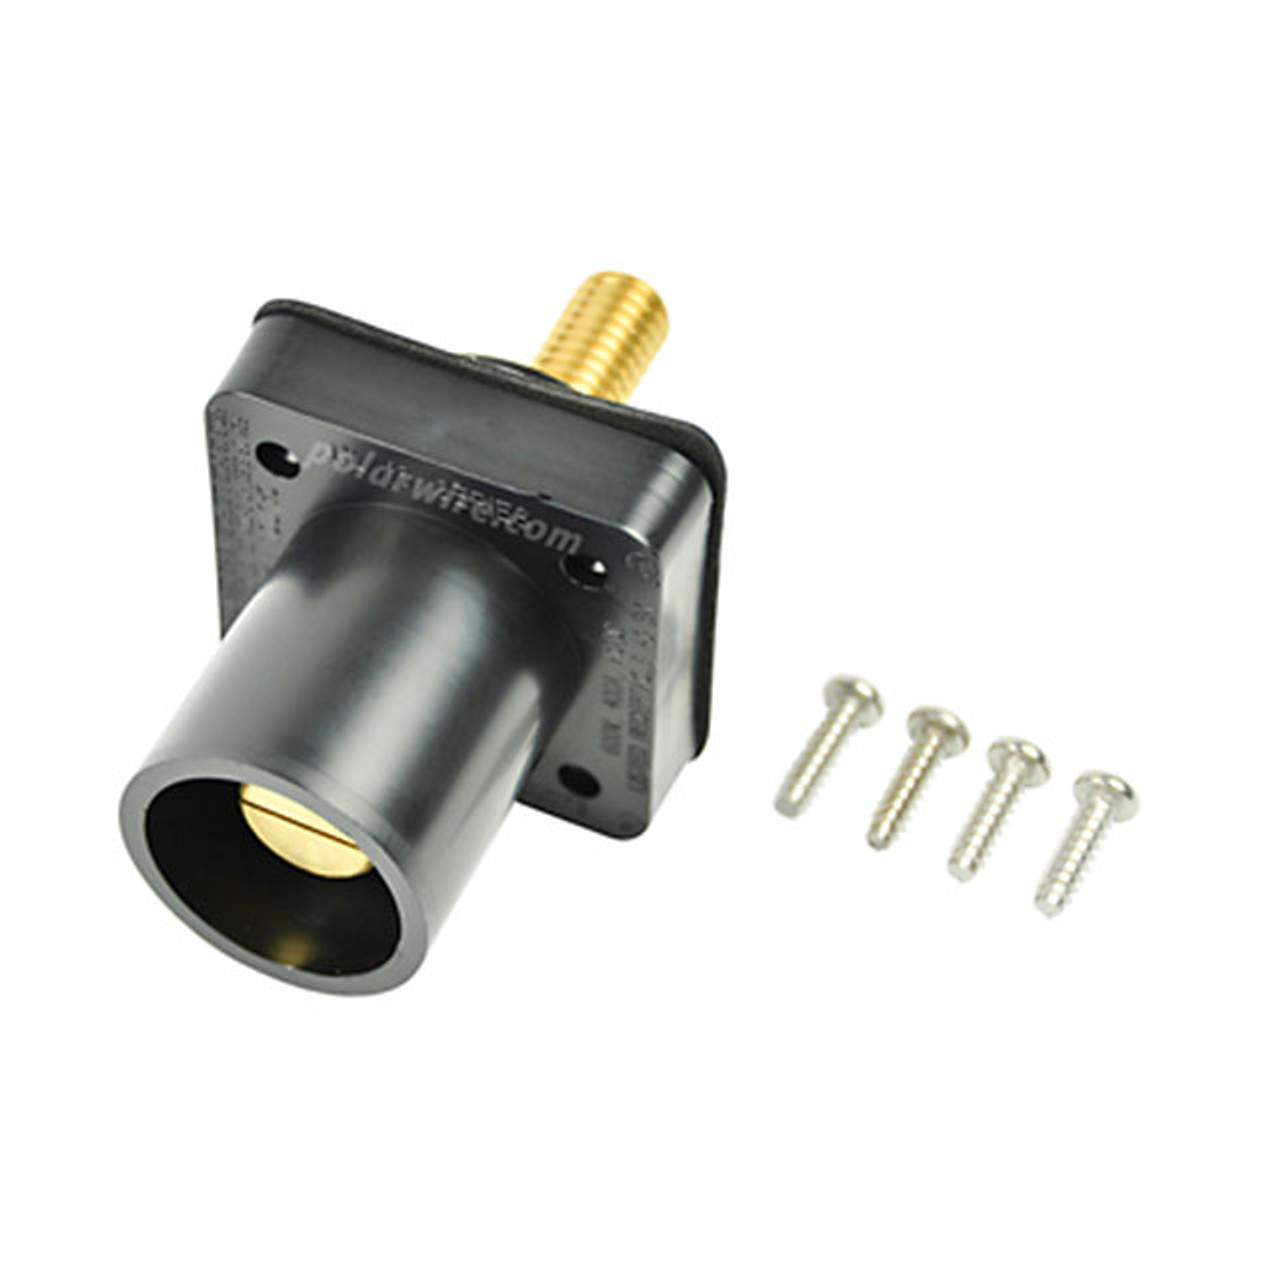 Marinco black 400A CL 16 Series male single pin panel mount cam lock connector with threaded stud for 2/0-4/0 AWG cable